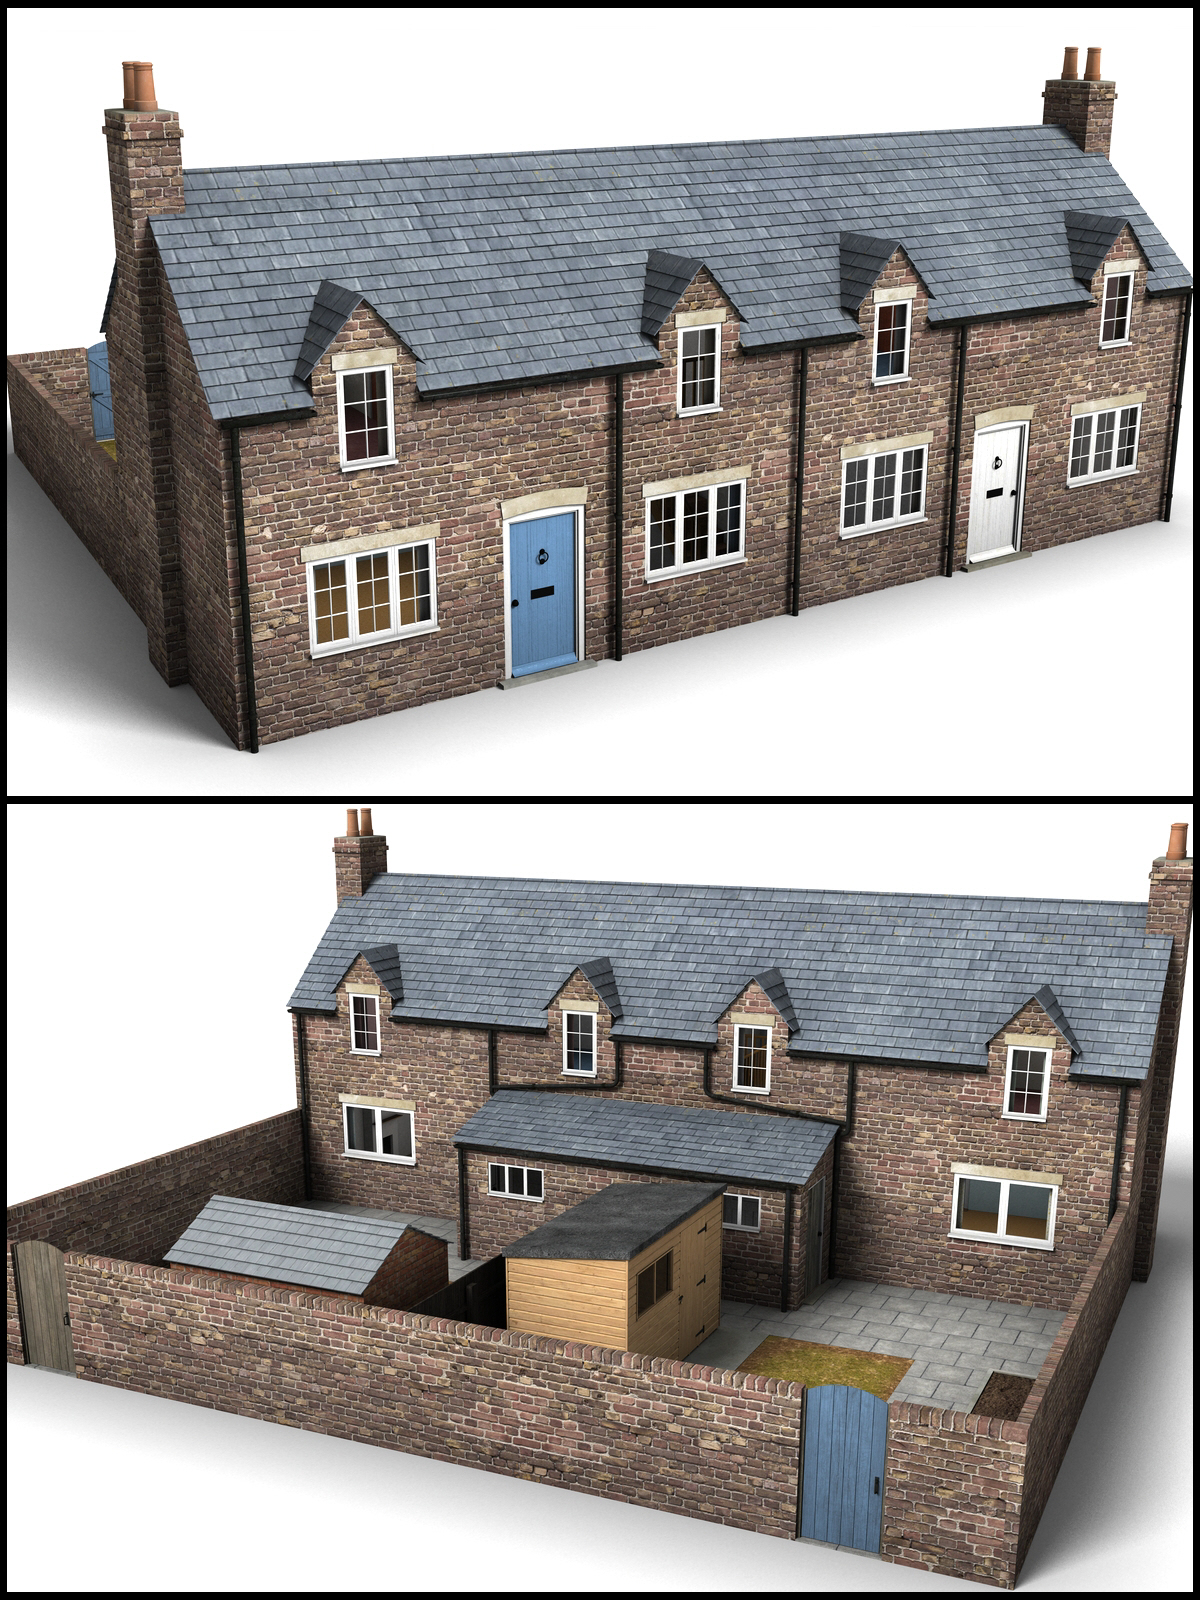 Workers cottages - Extended License by DryJack